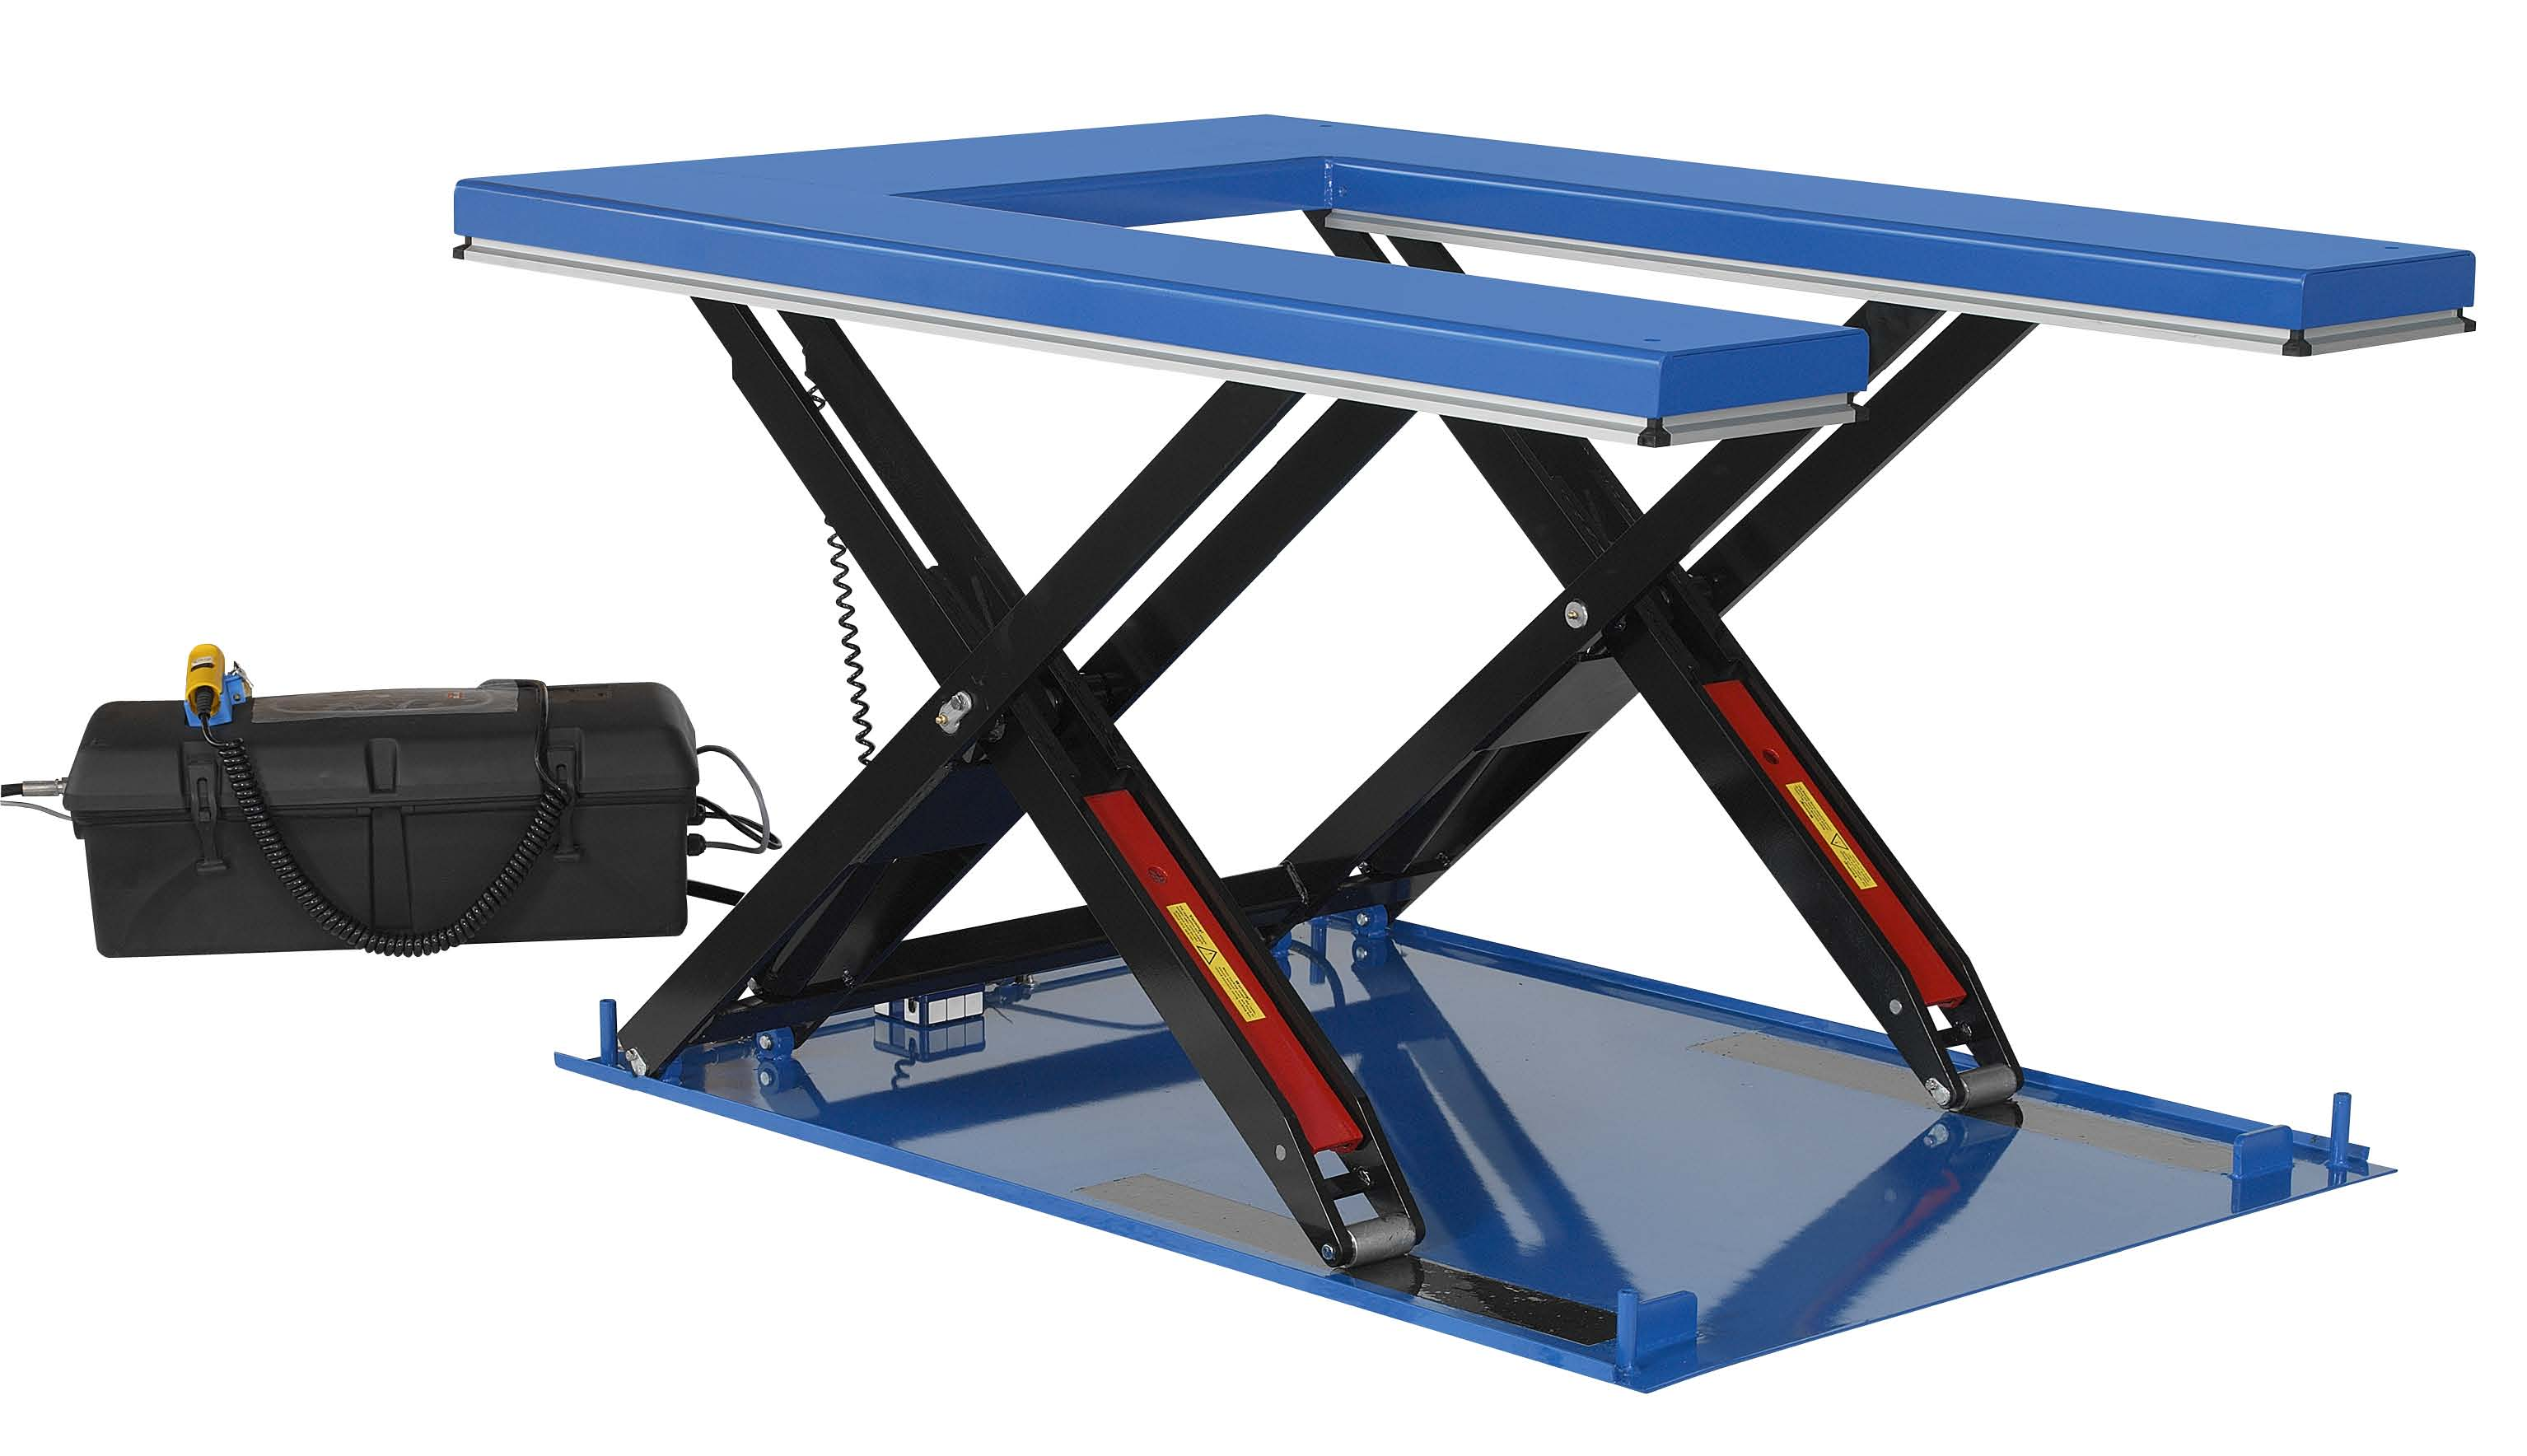 table silverstone lift material image handling